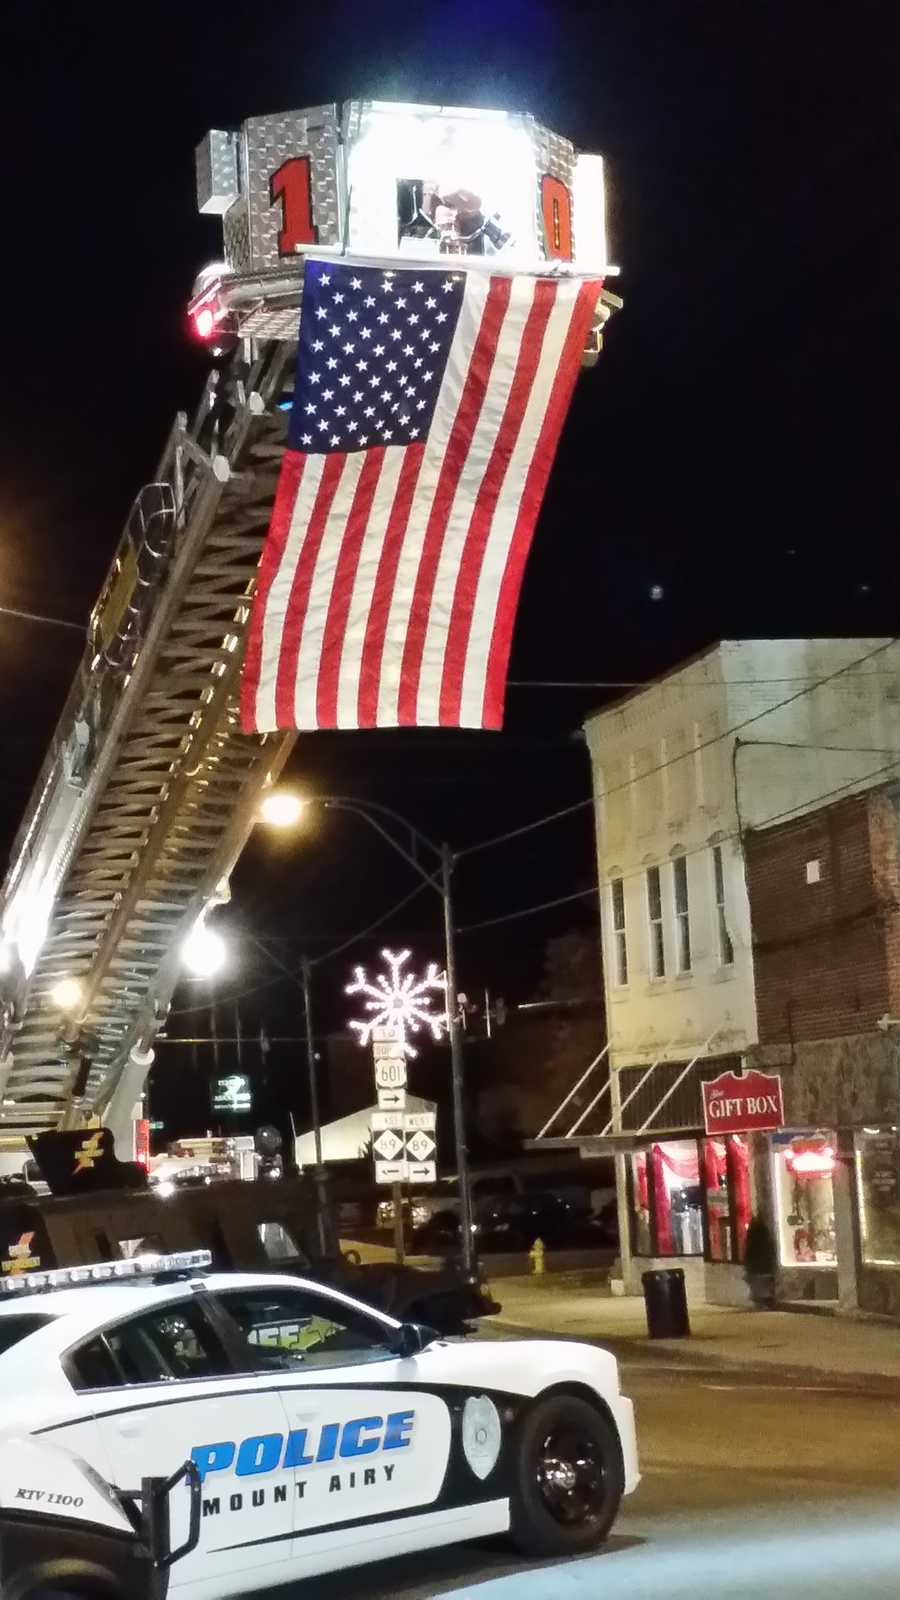 A big American flag is hoisted above downtown Mount Airy.